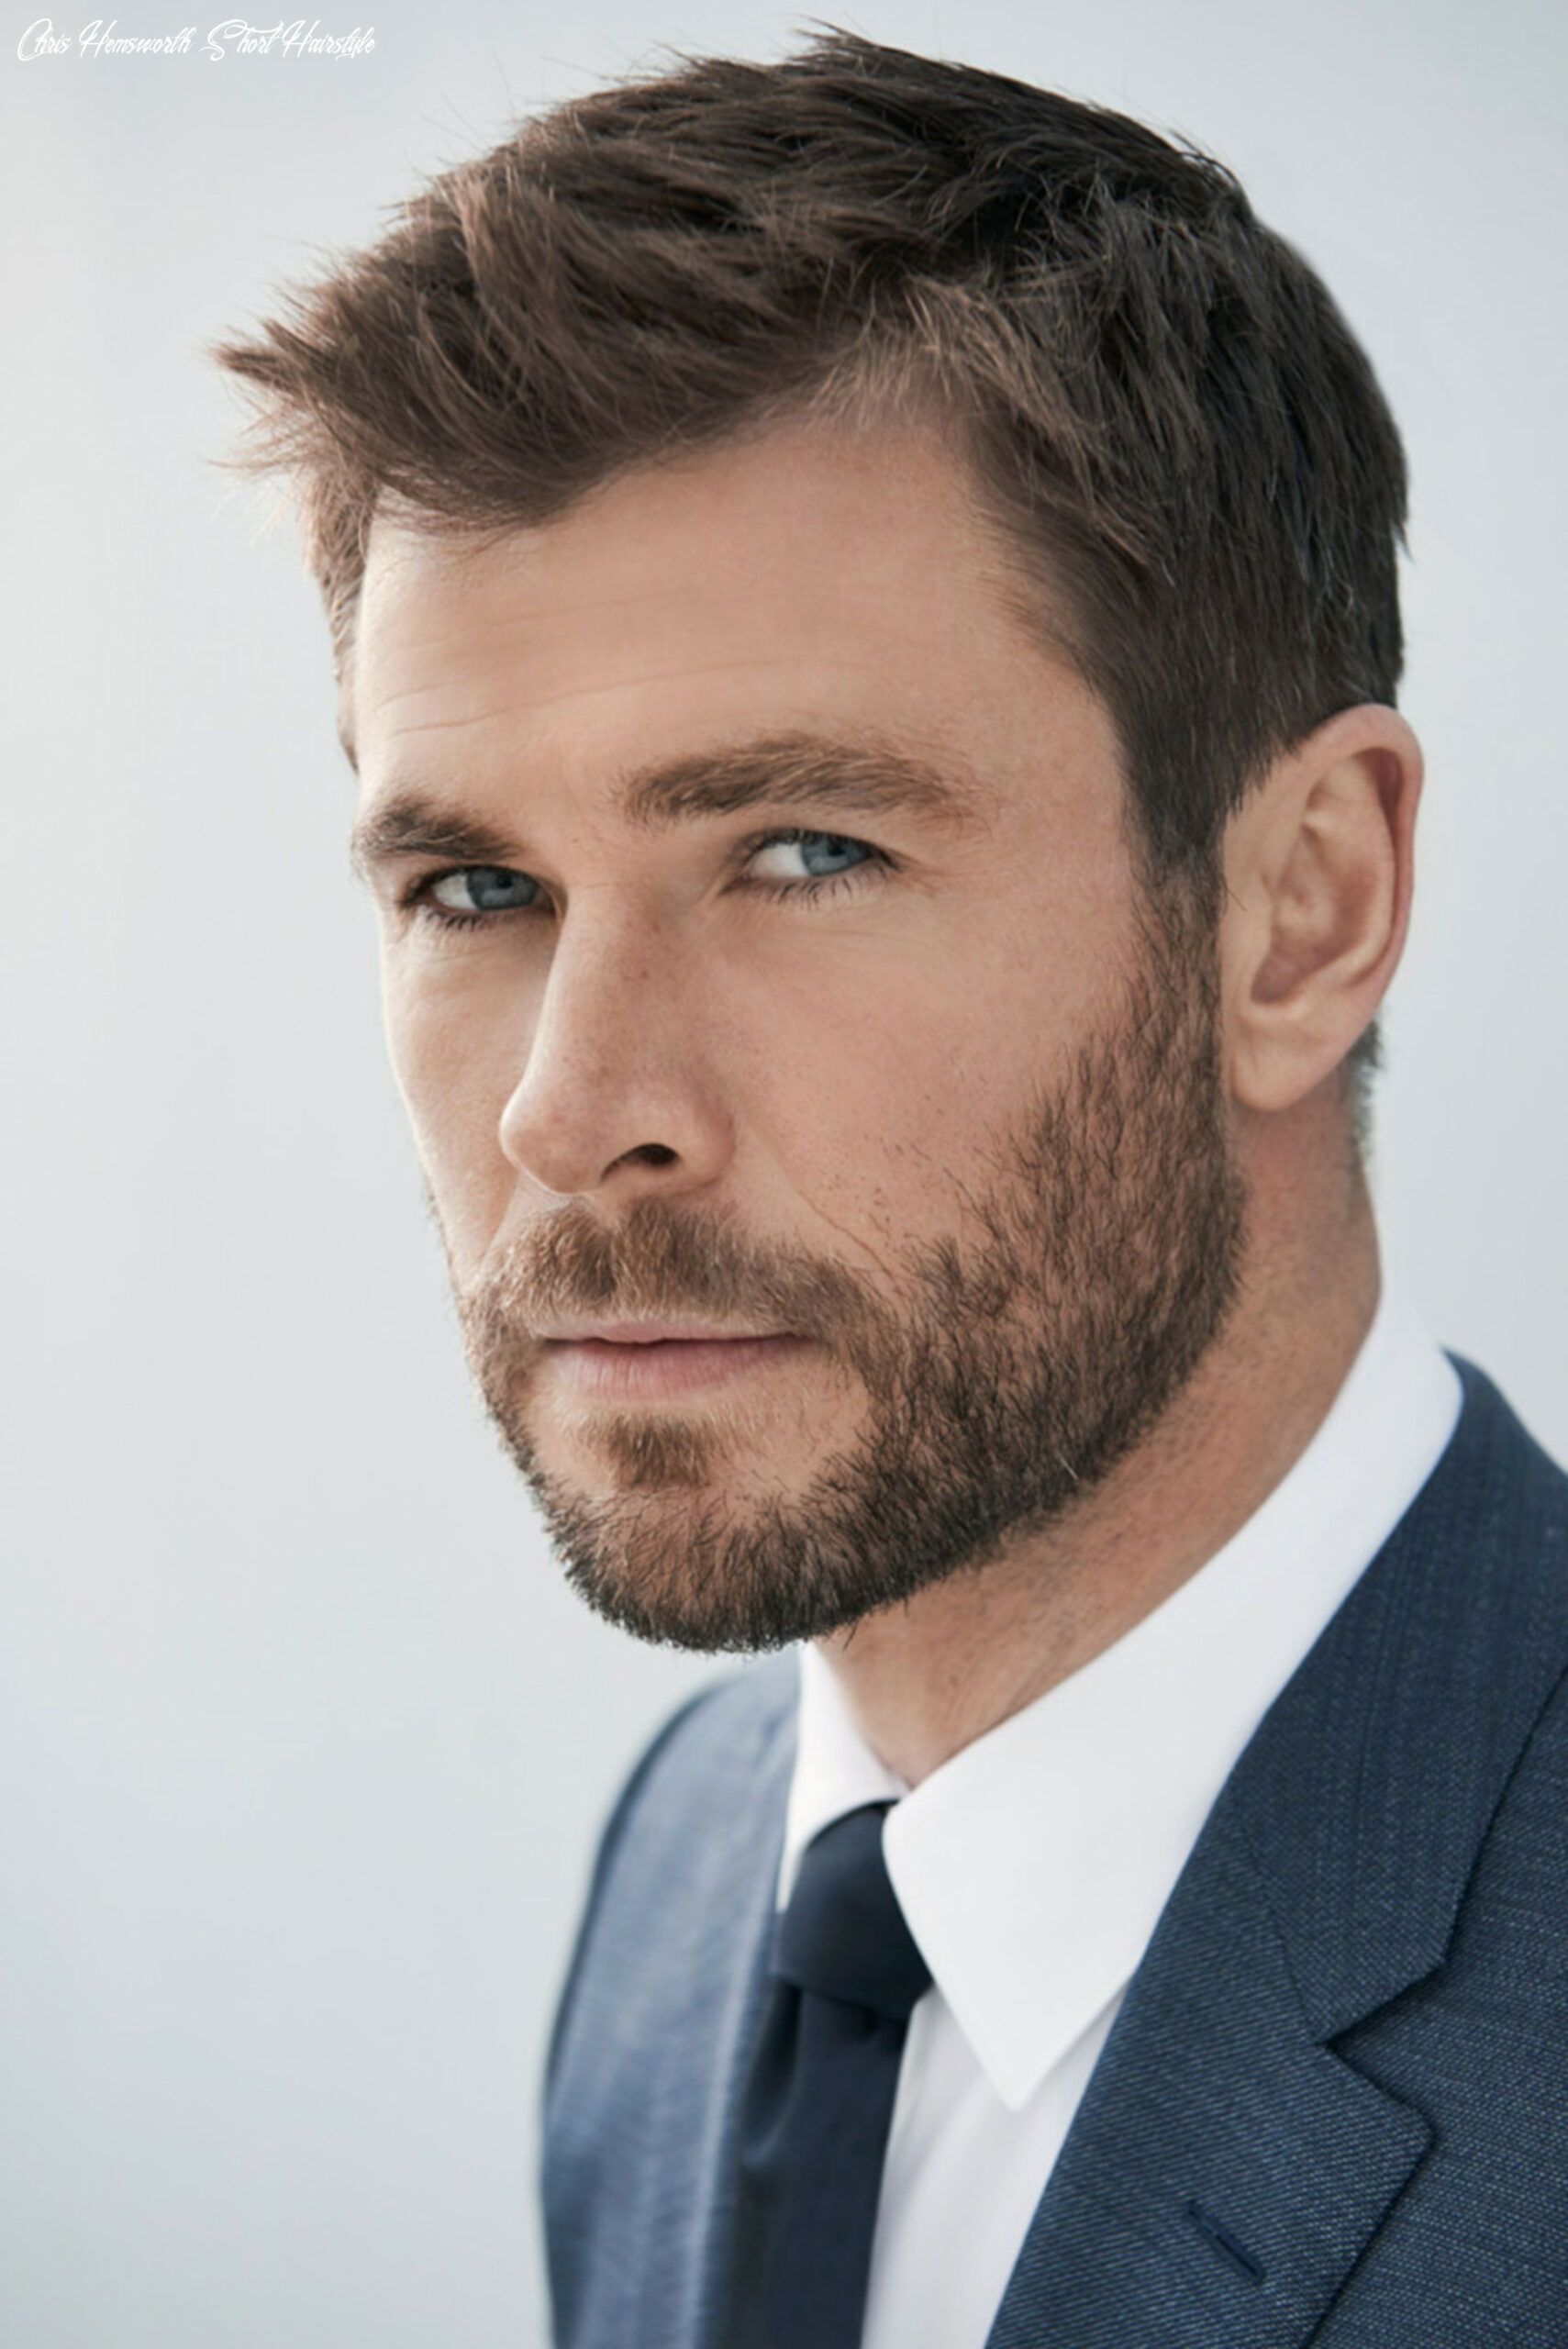 Gentleman #chrishemsworth | chris hemsworth hair, chris hemsworth